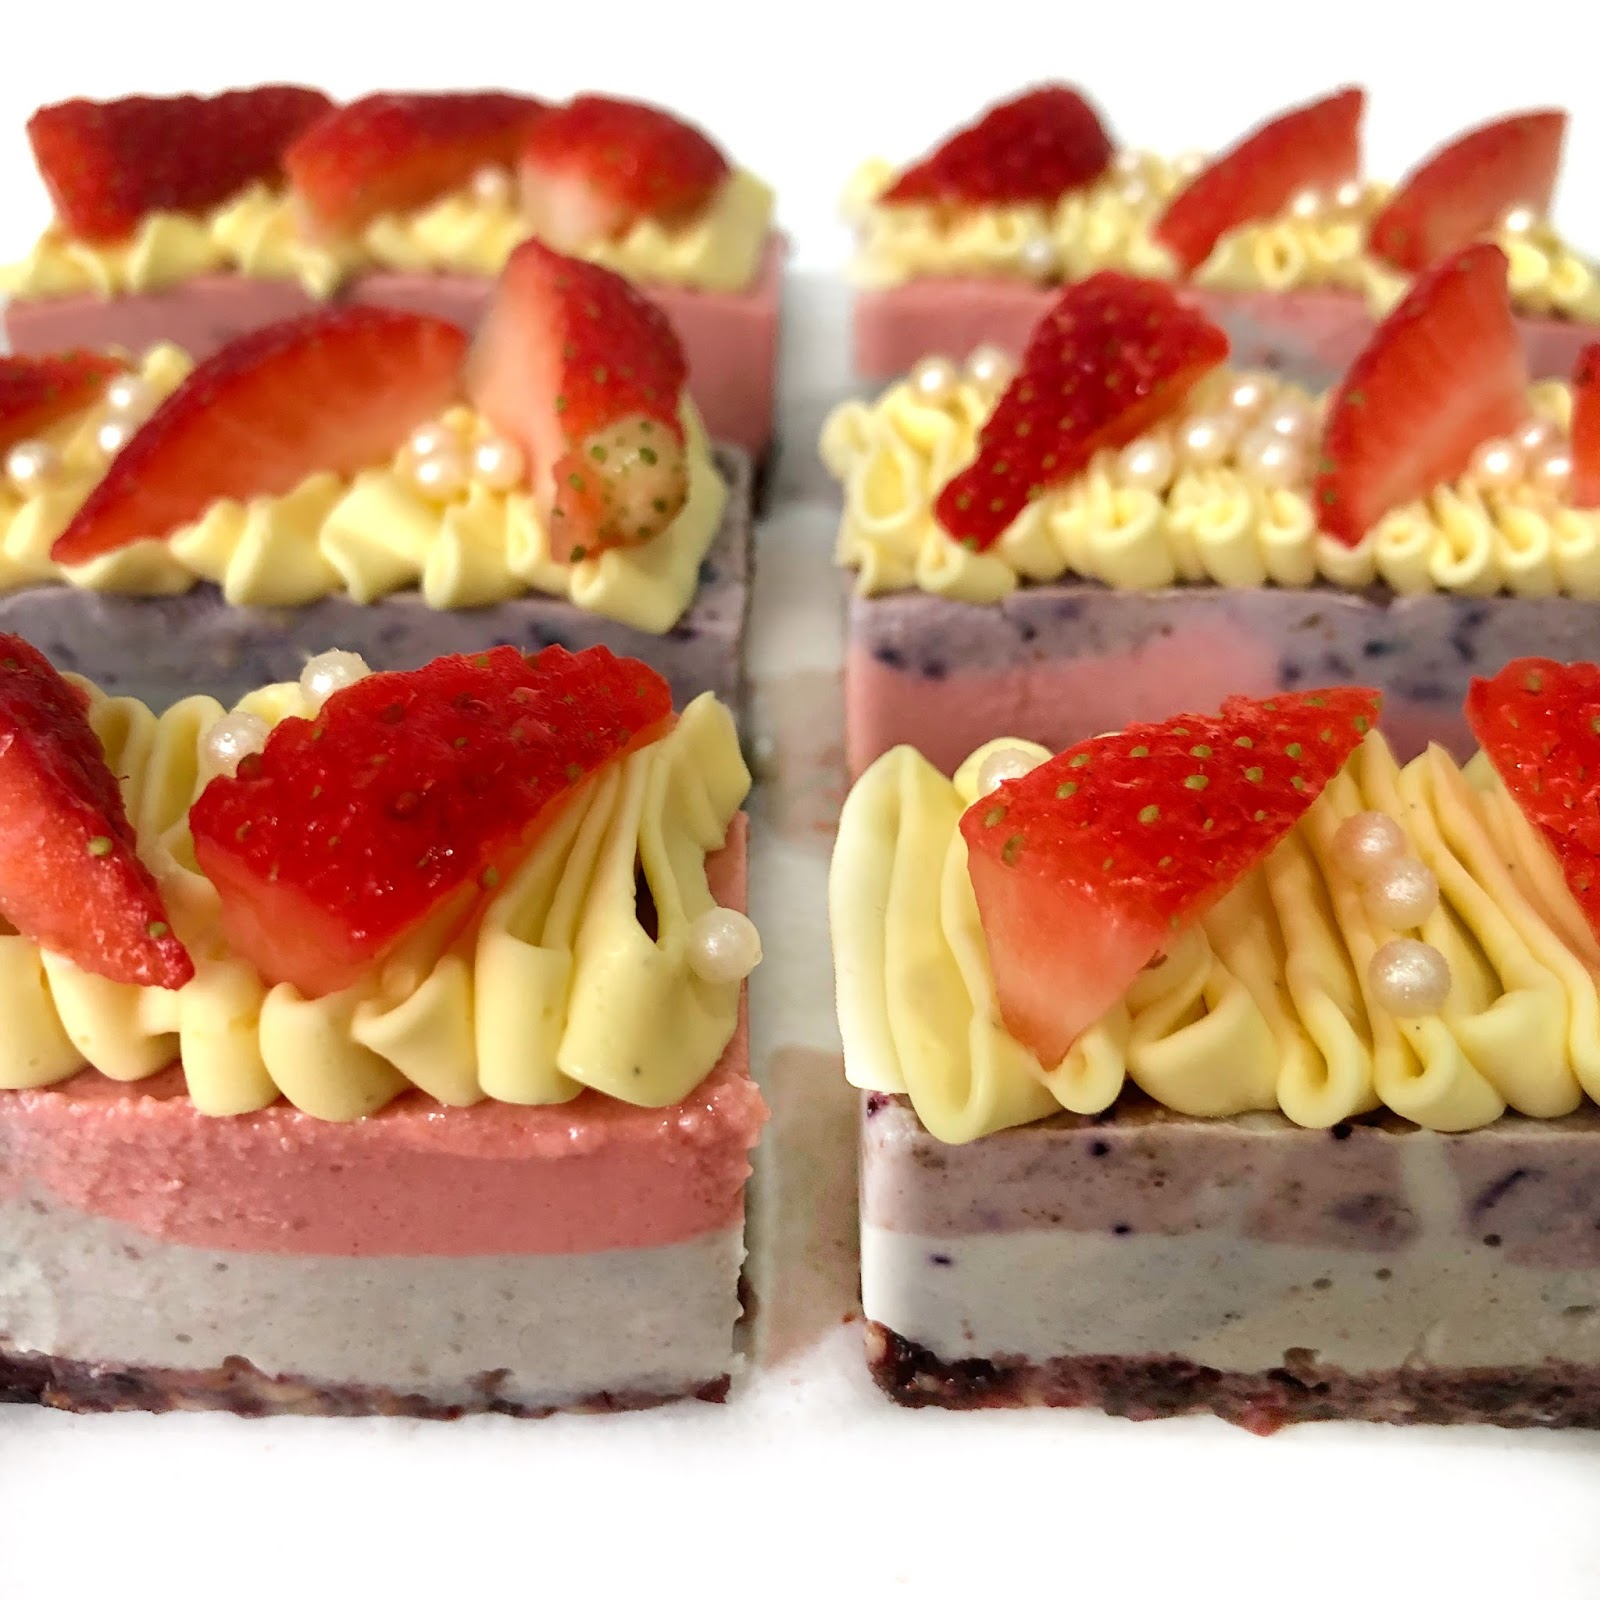 Raw Blueberry cheesecake with strawberries